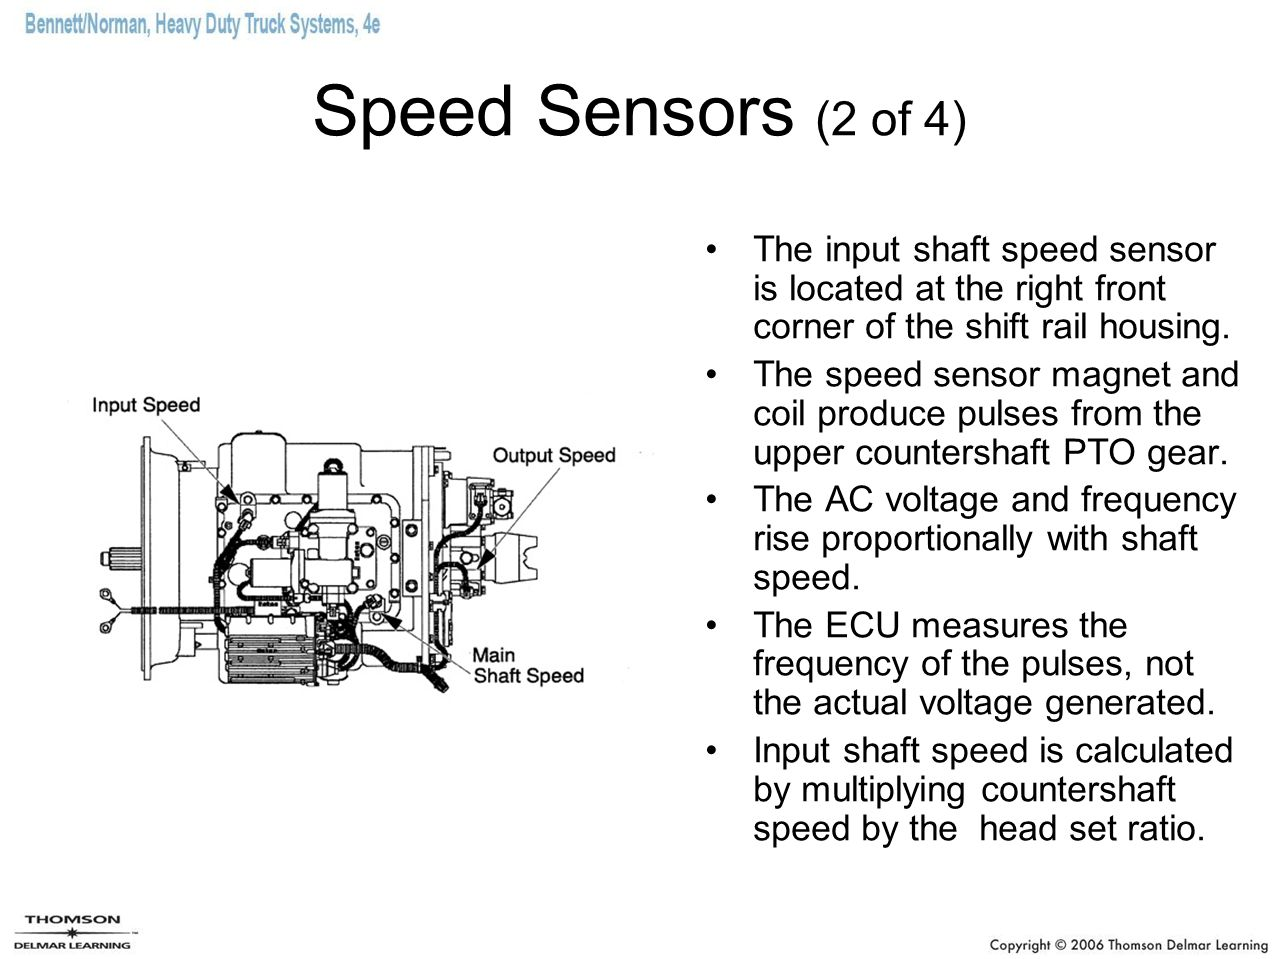 Speed Sensors (2 of 4) The input shaft speed sensor is located at the right front corner of the shift rail housing.